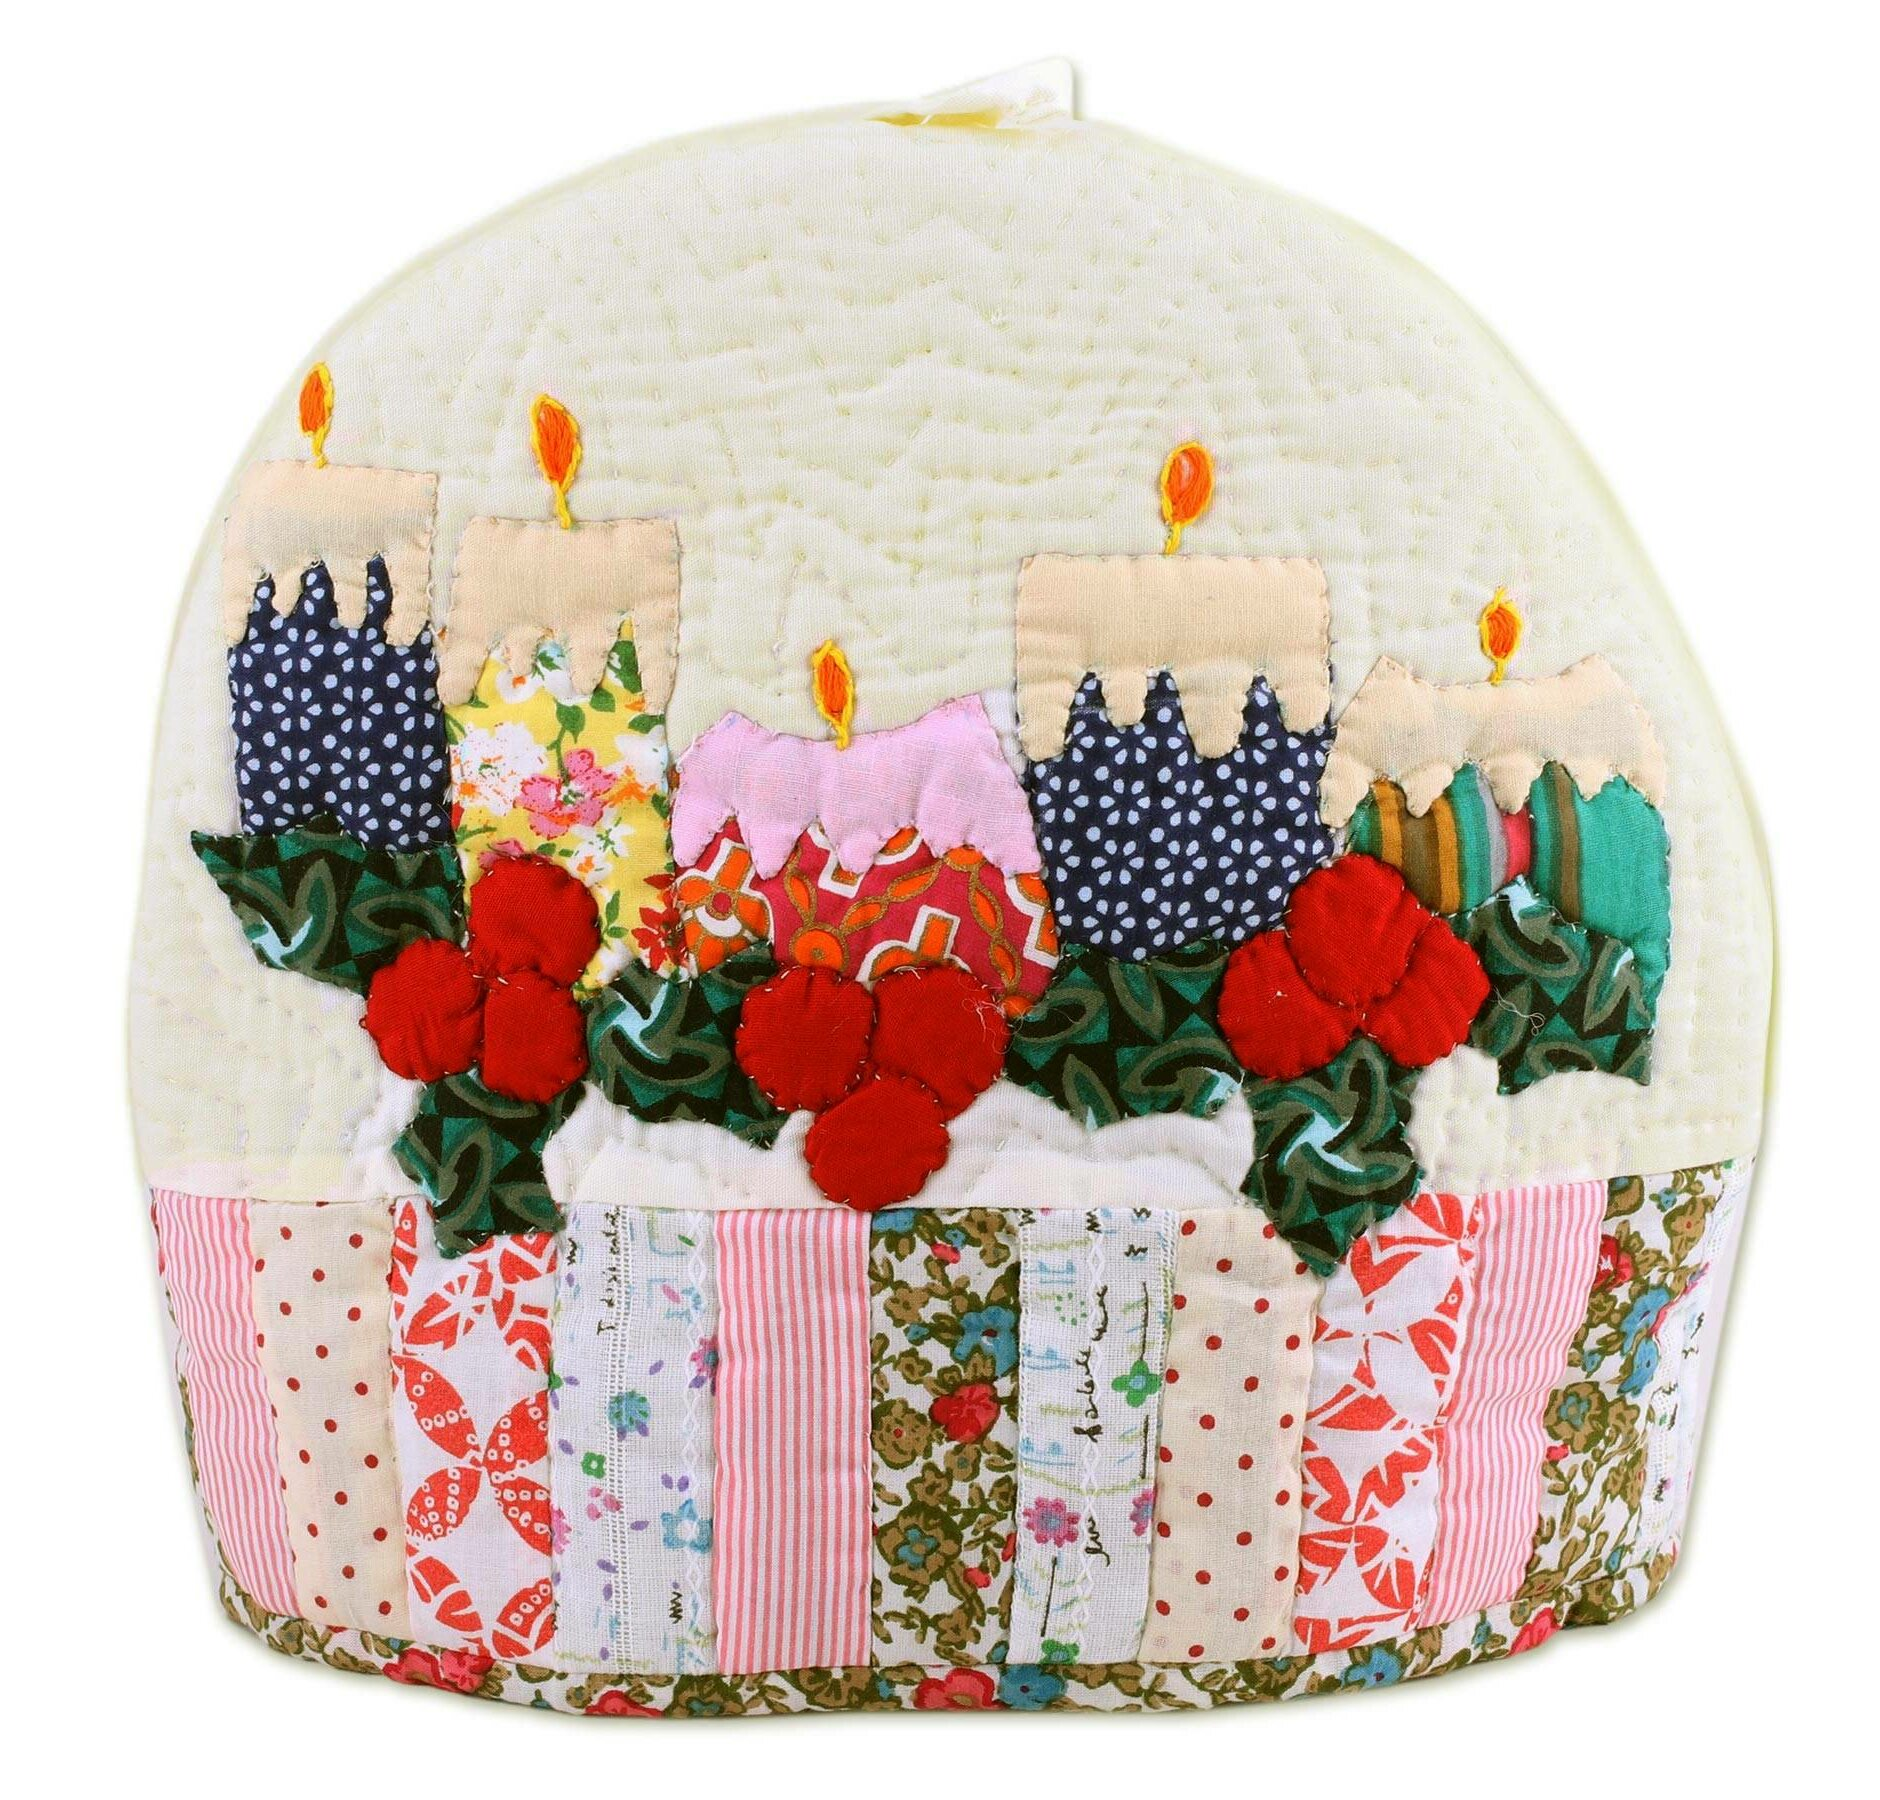 The Holiday Aisle Lale Holiday Candles Quilted Cotton Tea Cozy Wayfair